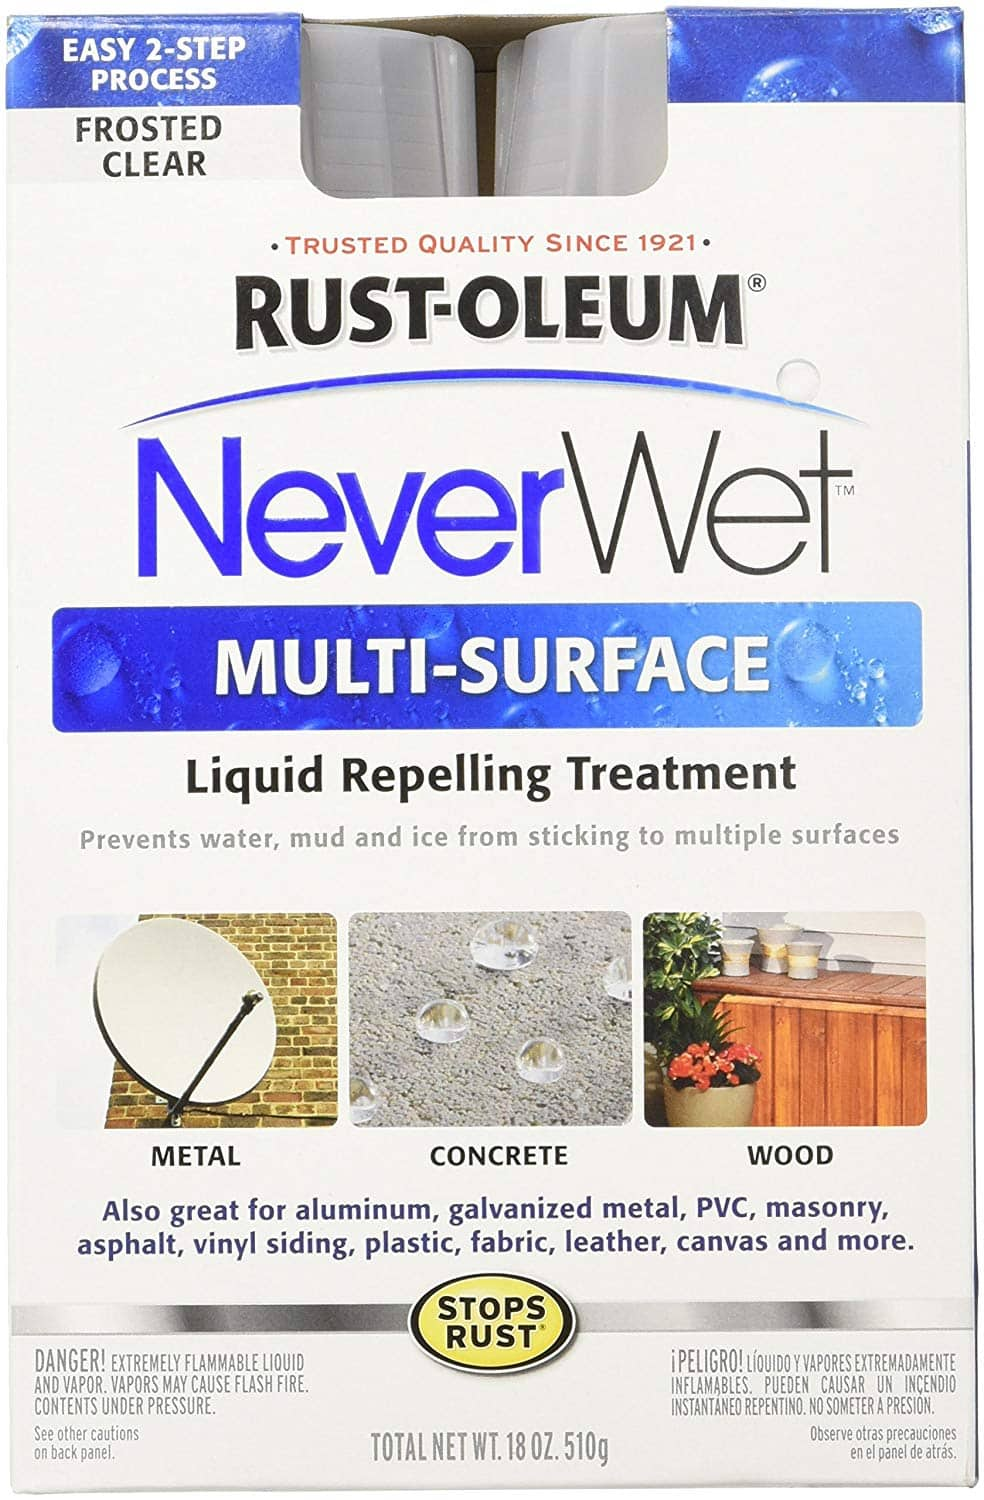 Rustoleum Neverwet - Frosted Clear - Two Spray Can Kit @ Dollar Tree ($6.75 @ Amazon, $15.09 @ Home Depot)